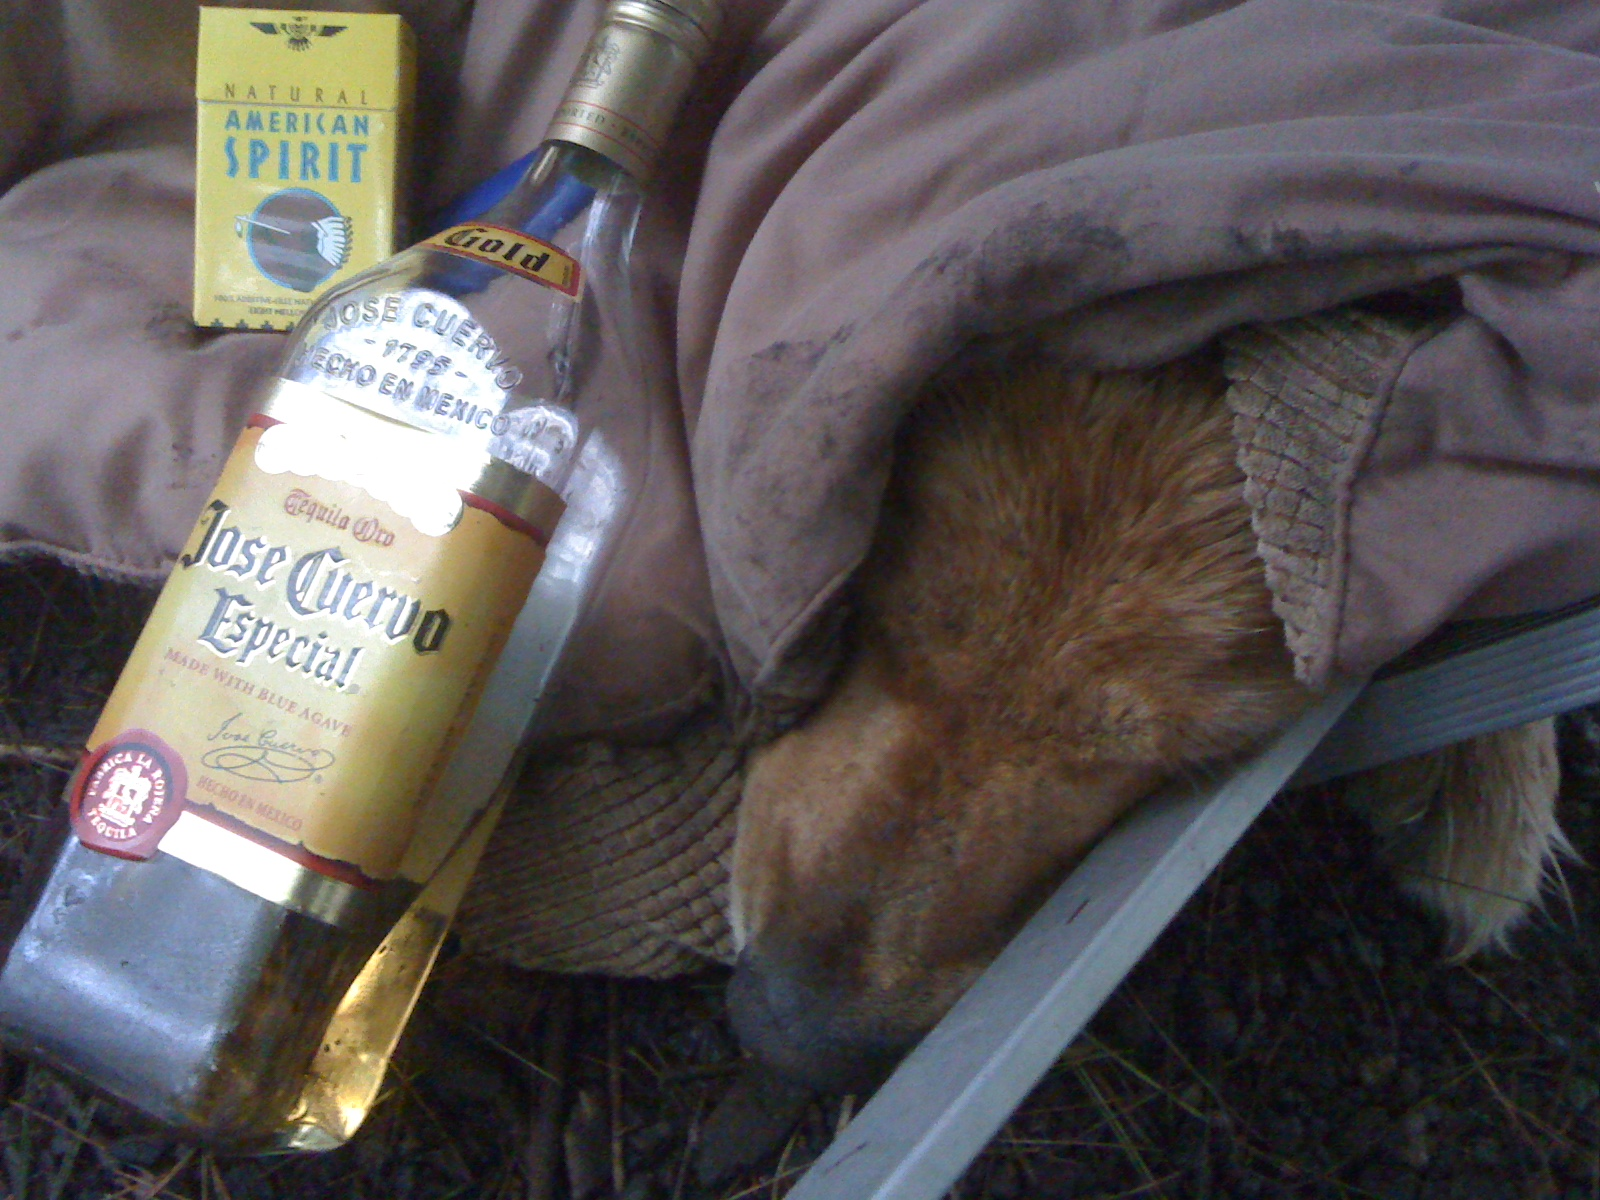 Camping in the rain, tired and miserable, and too much tequila and cigarettes